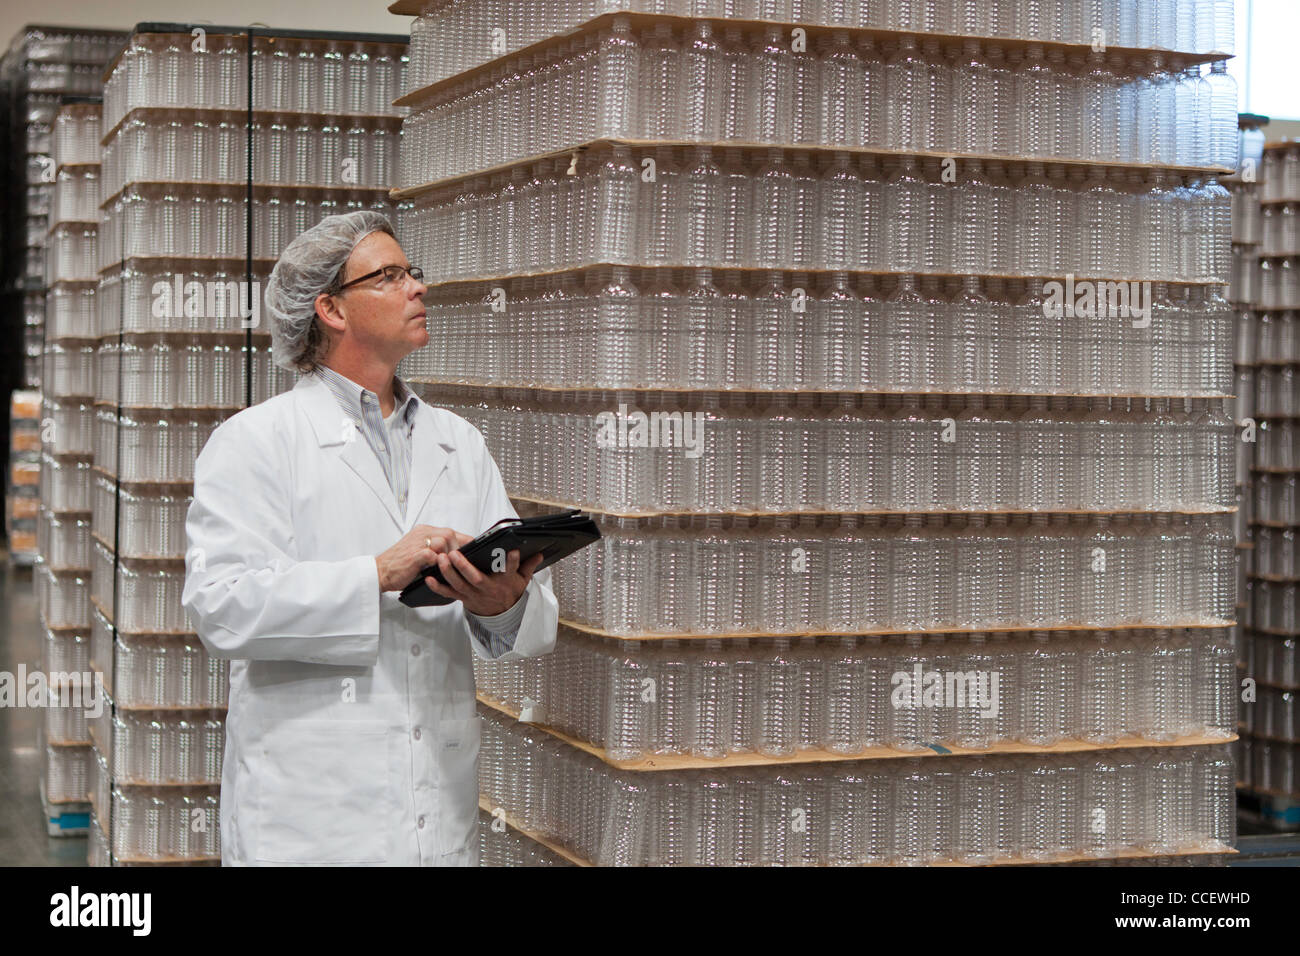 Man inspecting bottled water in distribution warehouse - Stock Image